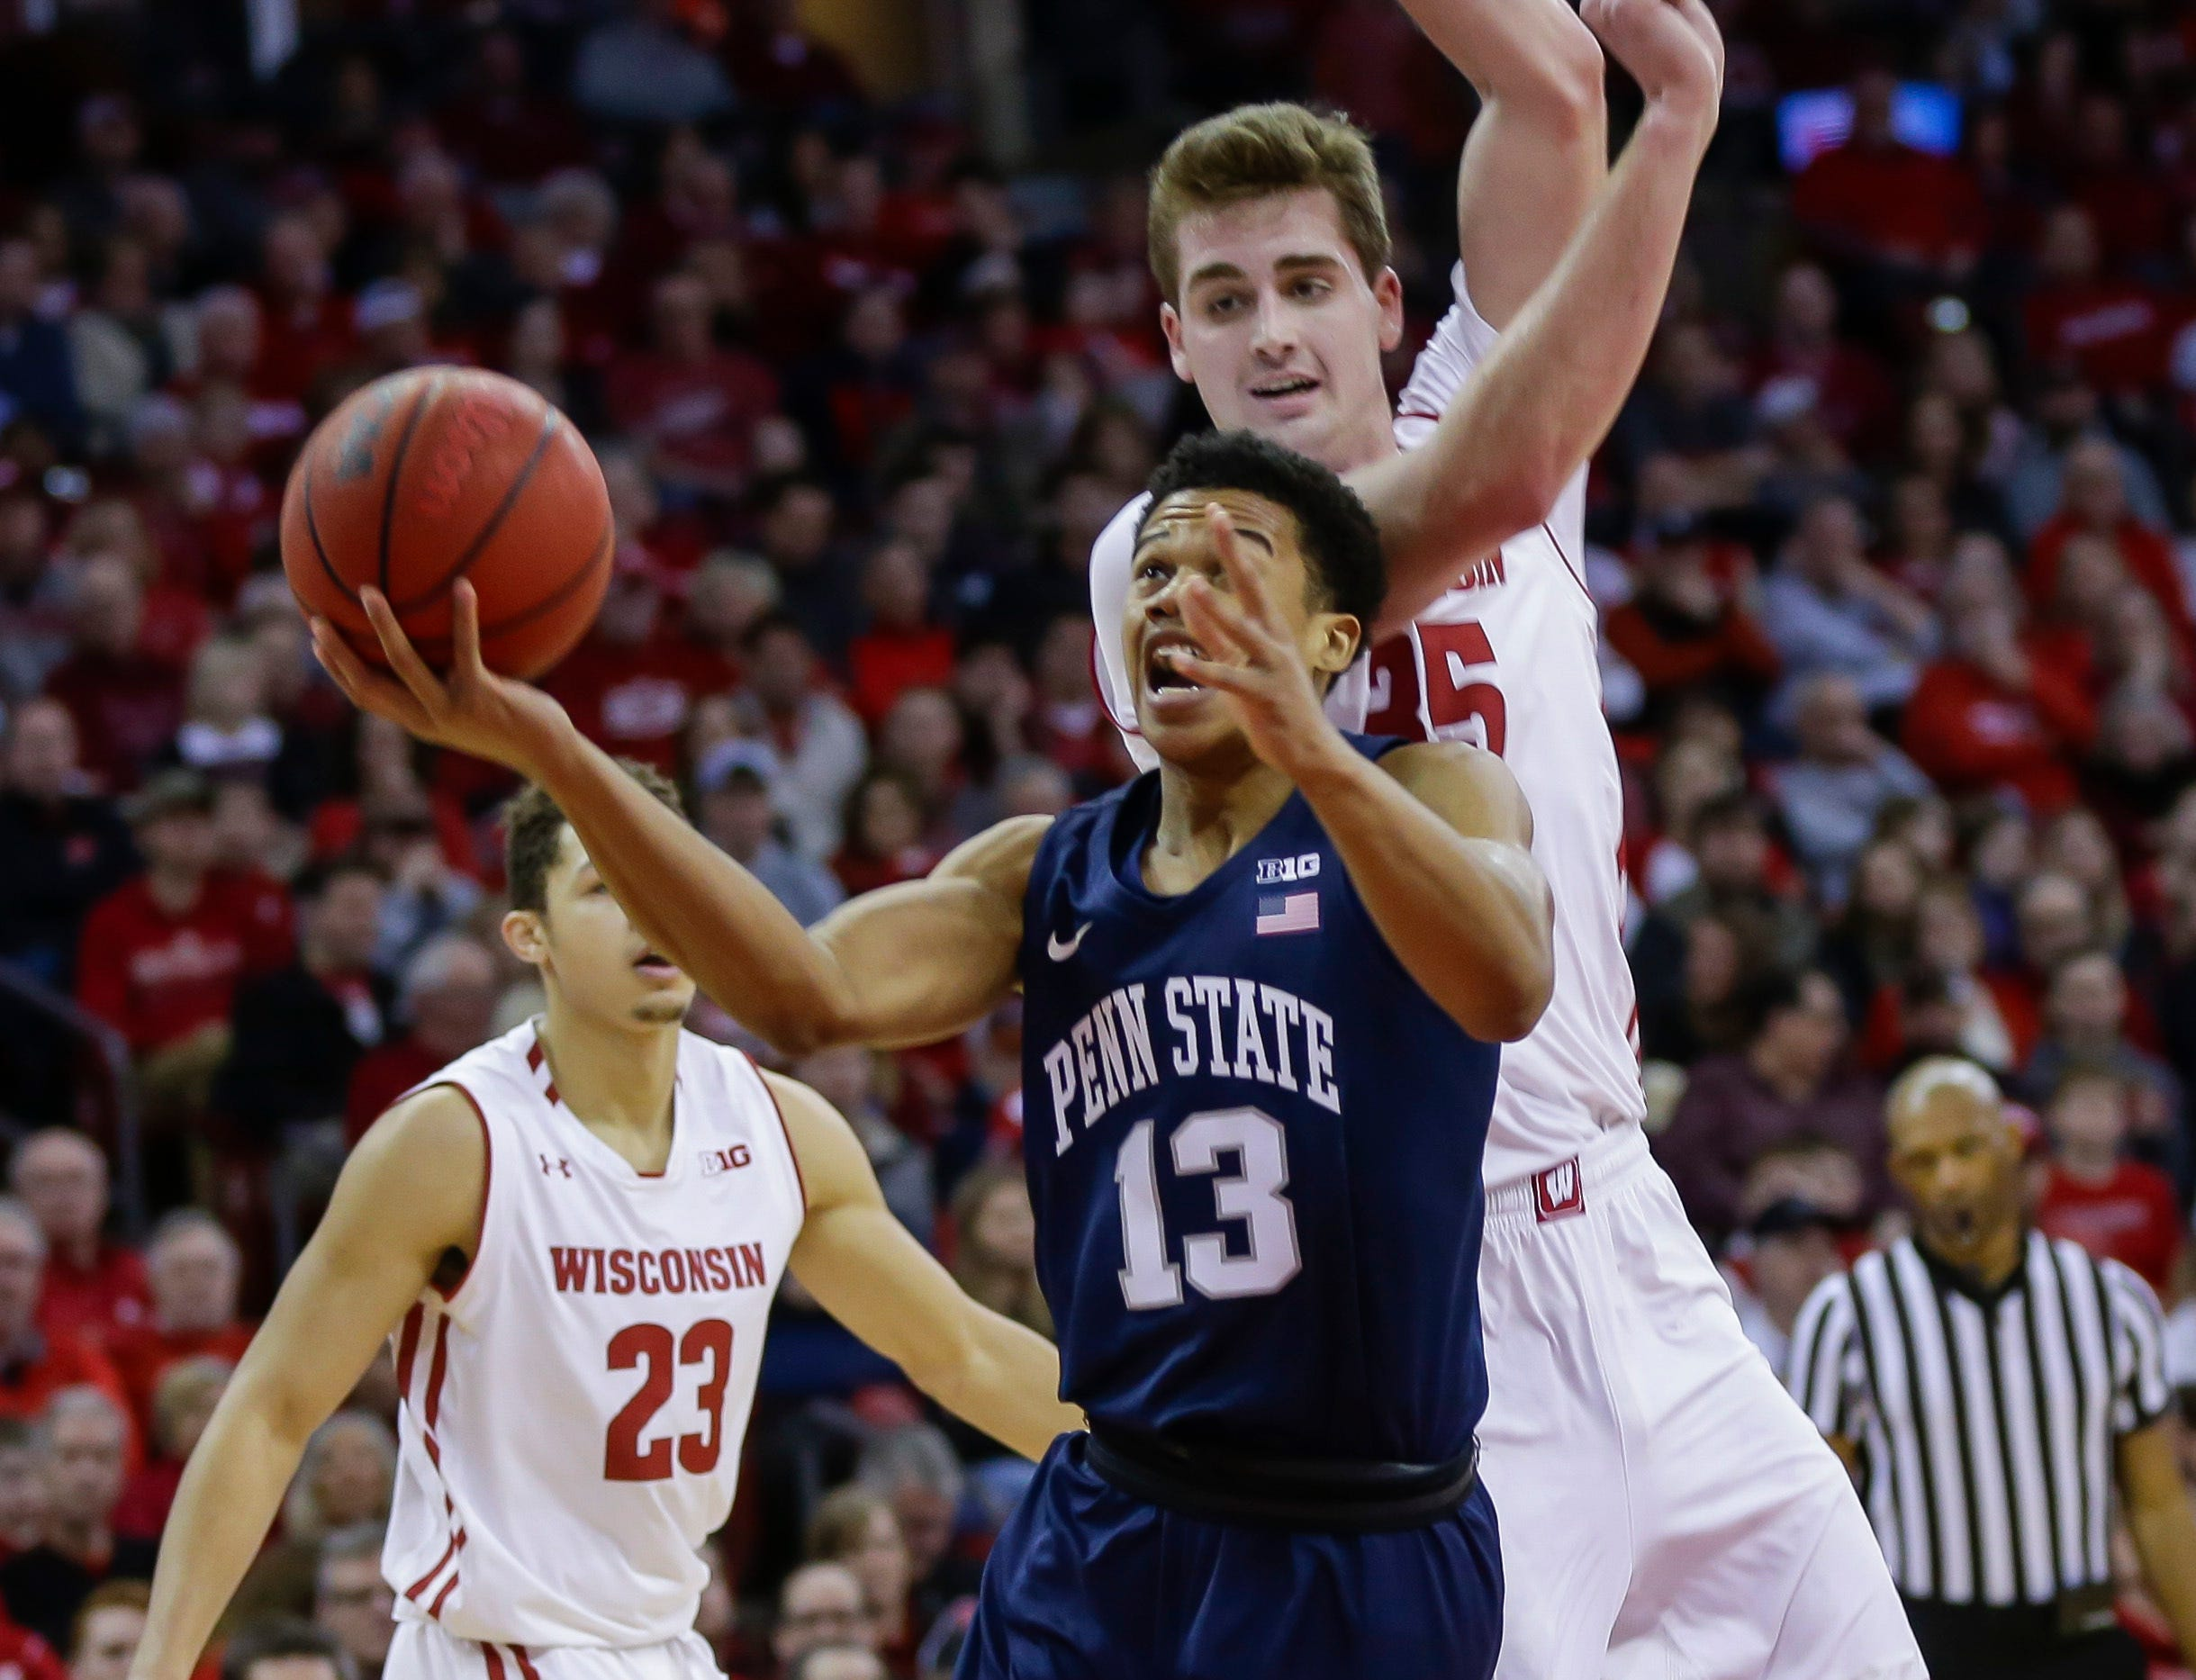 12. Penn State (12-17, 5-13) – The Nittany Lions continue to play well as they destroyed Maryland early in the week and then came up short on the road against Wisconsin, ending a three-game winning streak. It's the sort of play the Nittany Lions expected early in the season, and with games at Rutgers and at home against Illinois to close the regular season, the chance to build momentum entering the conference tournament seems likely. Last week: 11.